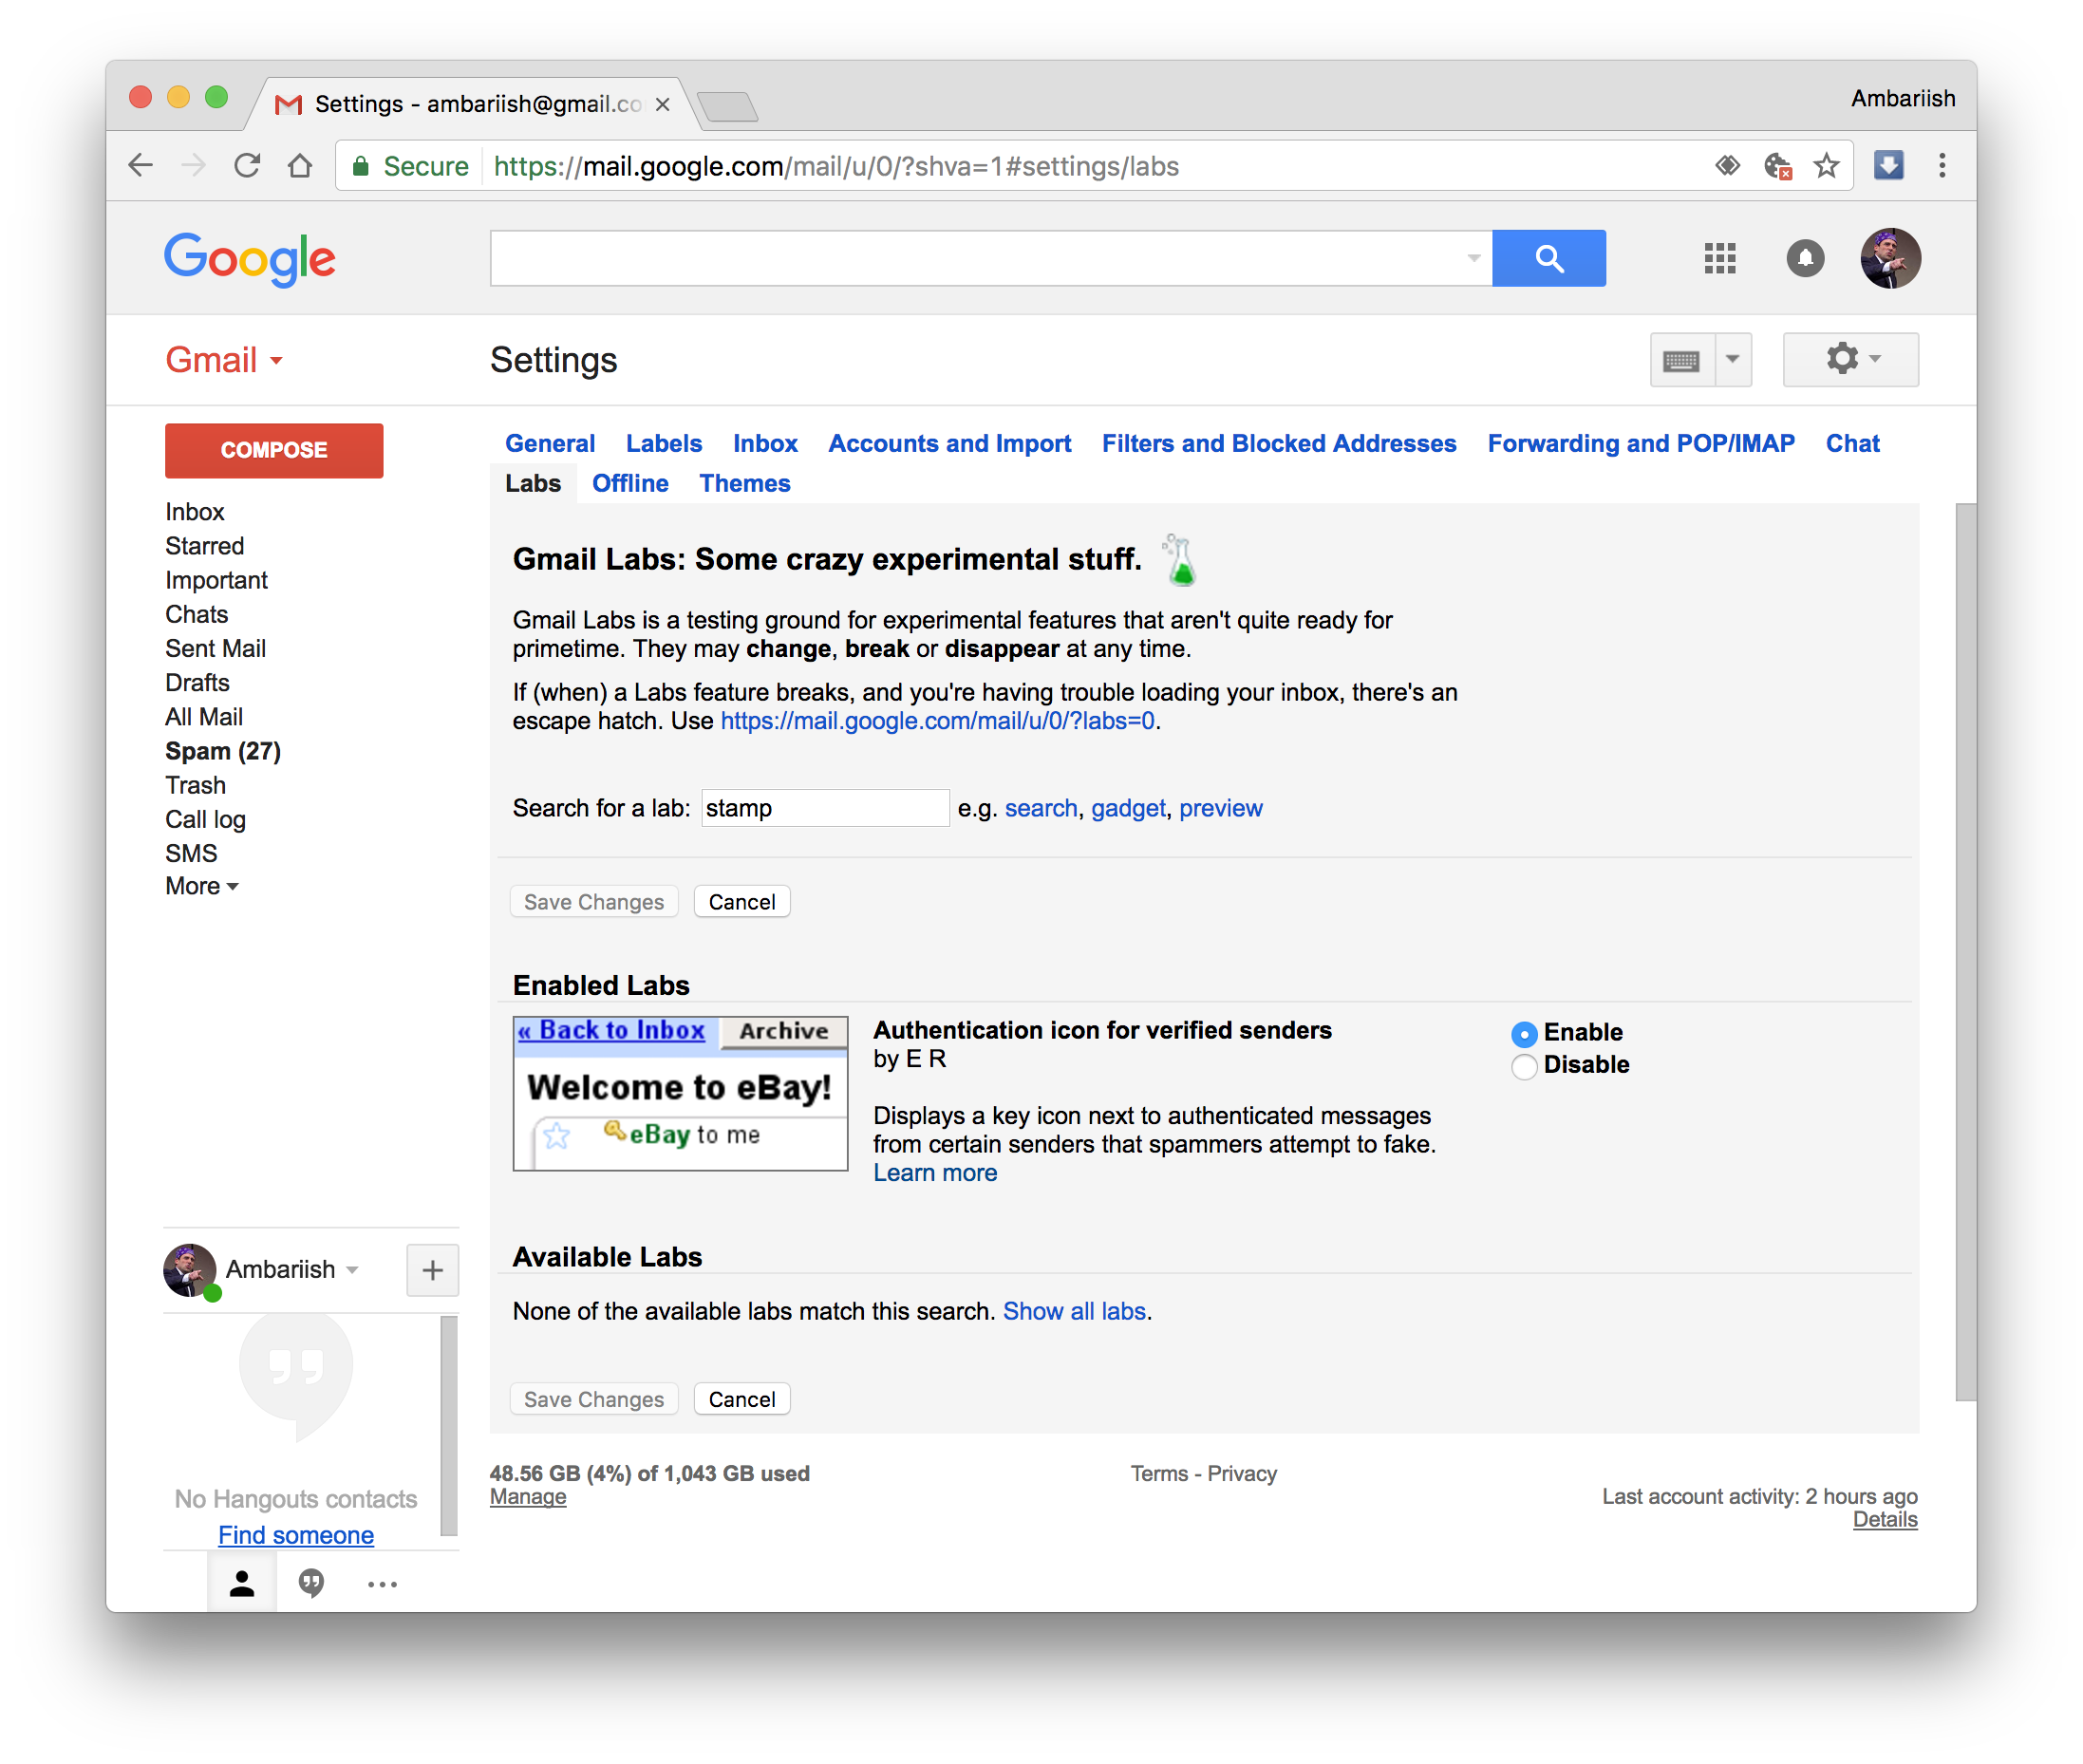 Enable Authentication icon in Gmail